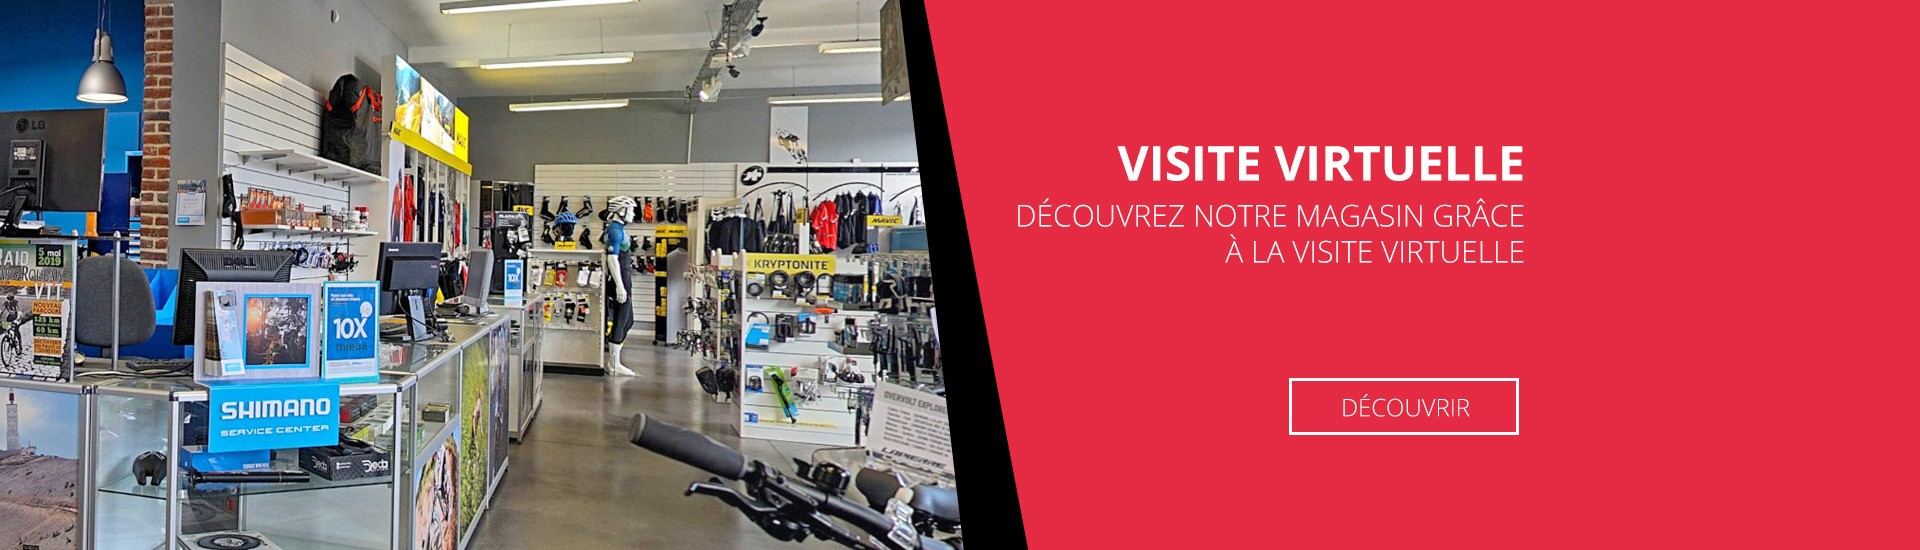 Visite virtuelle magasin Cycles Barelli